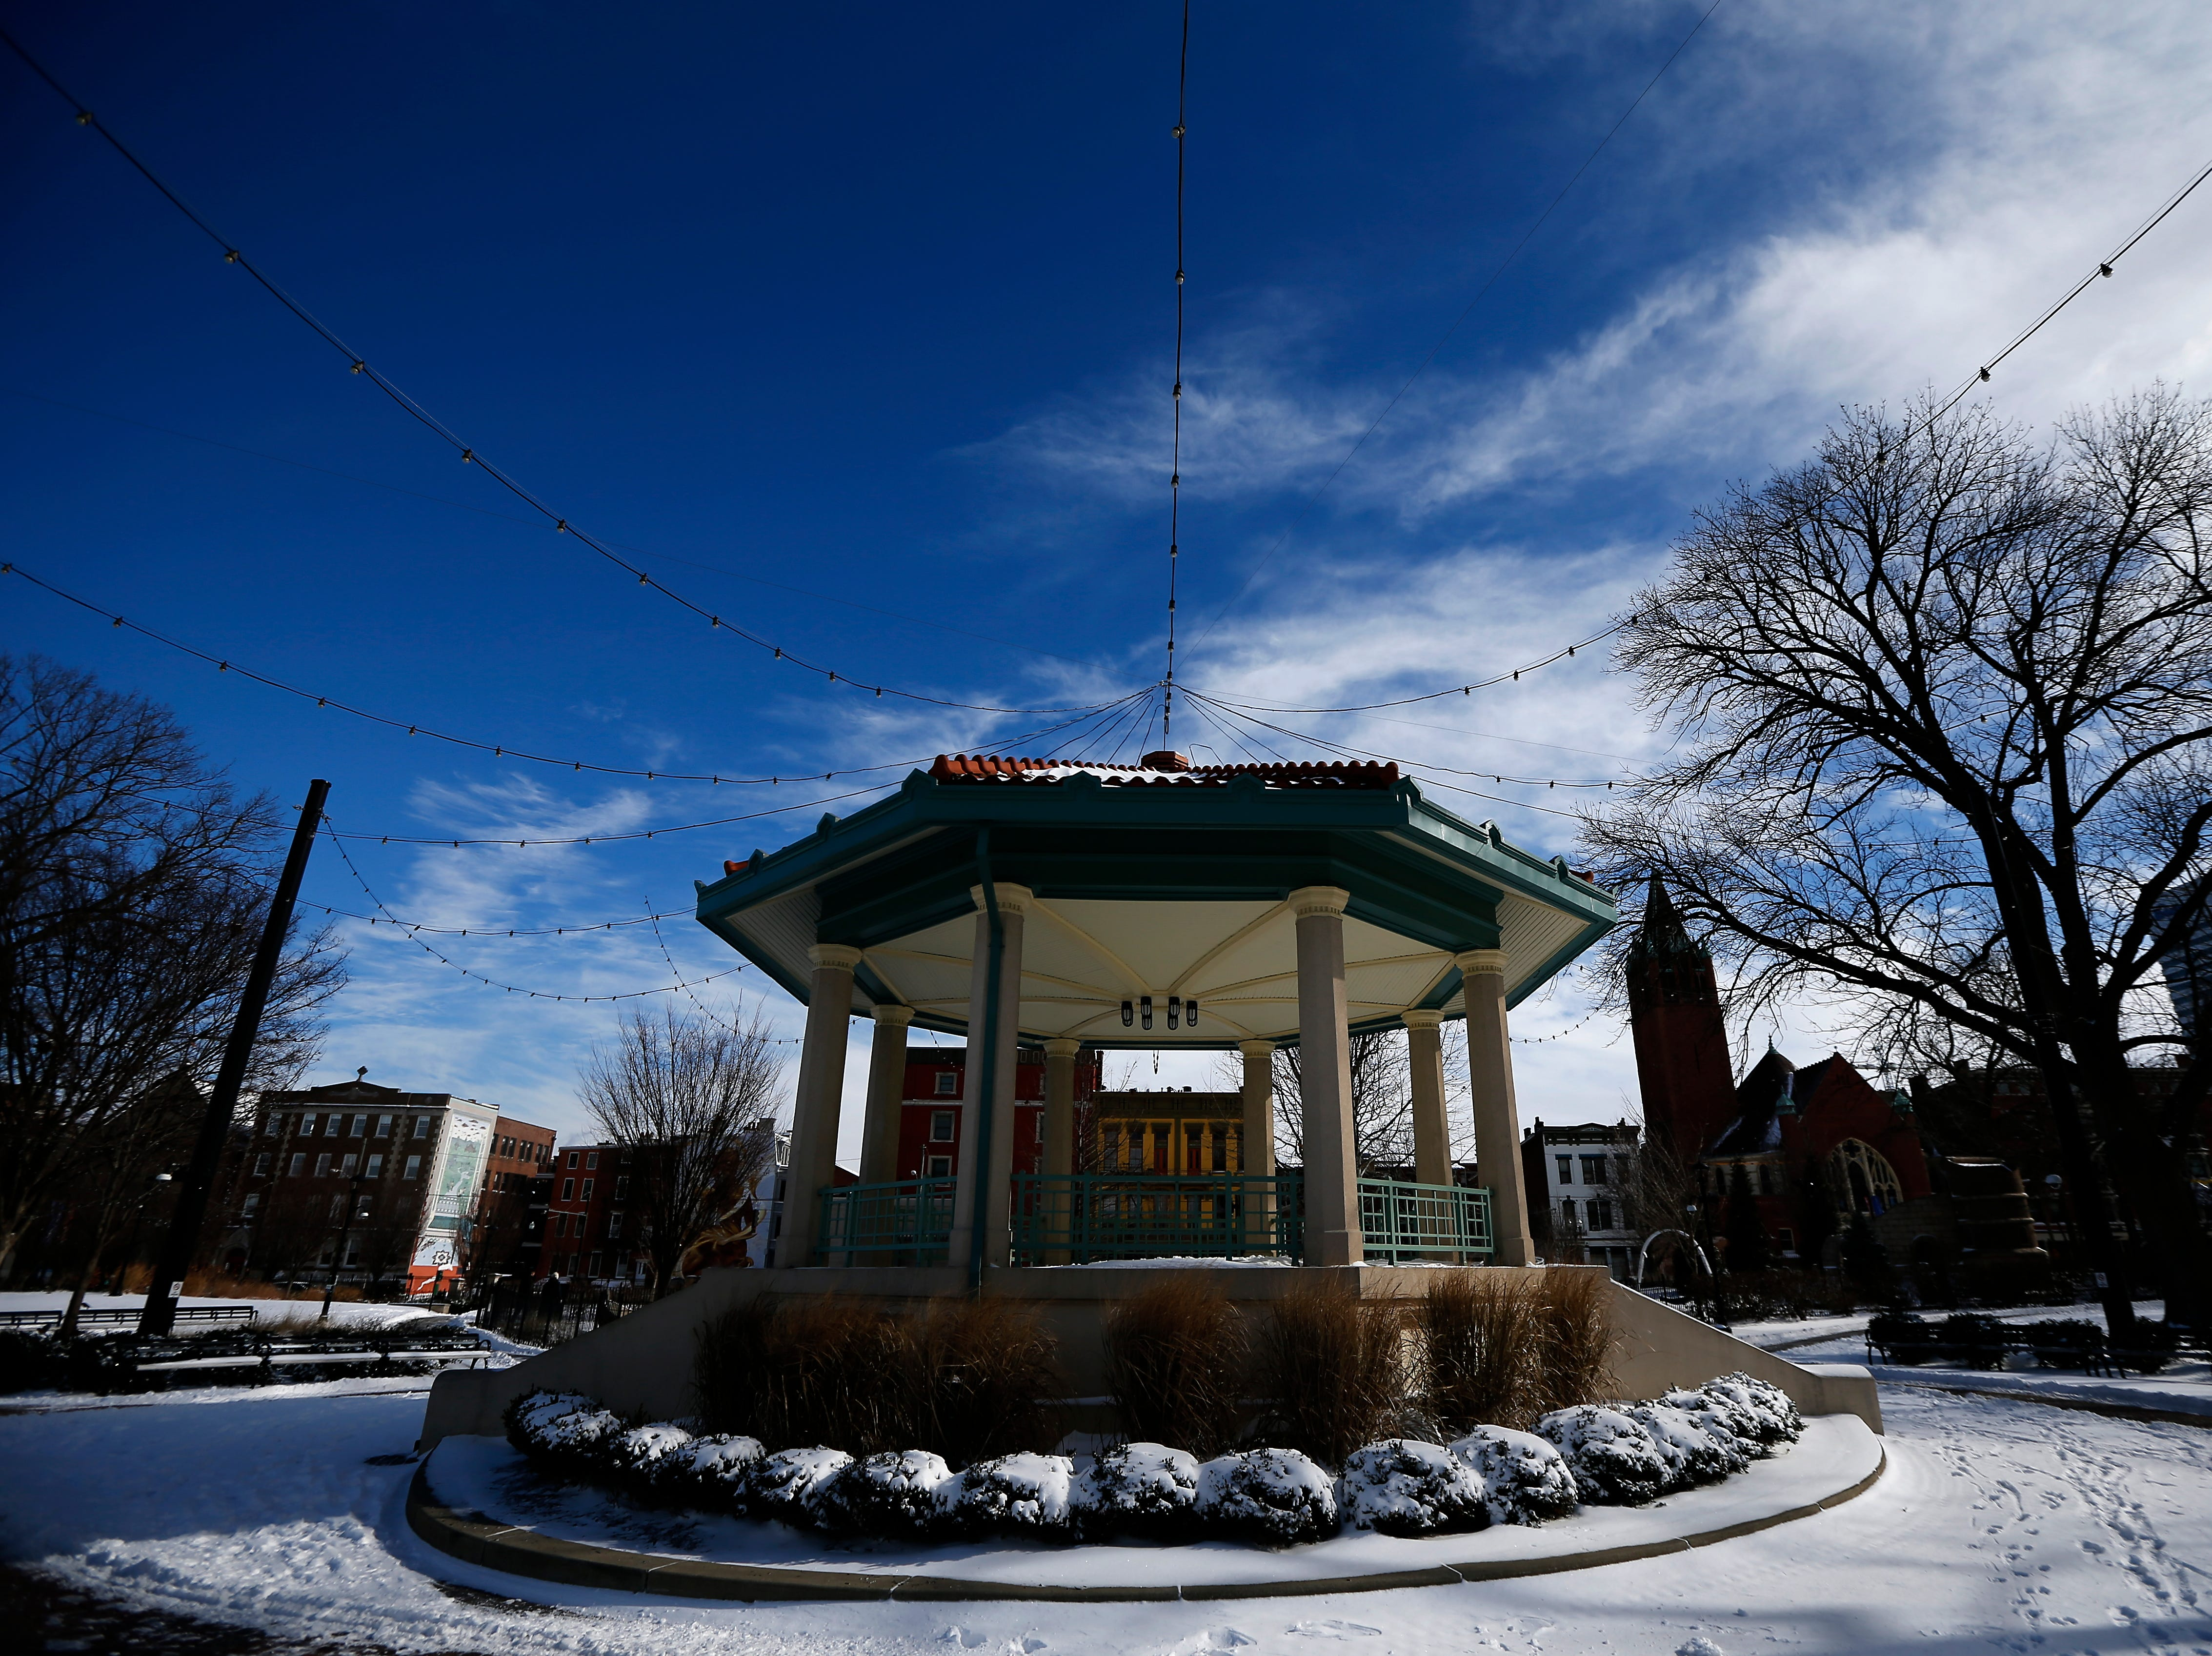 The gazebo is covered in snow at Washington Park in the Over-the-Rhine neighborhood of Cincinnati on Sunday, Jan. 20, 2019. Temperatures remain below 15 degrees with windchills as low as 4 in the region Sunday.